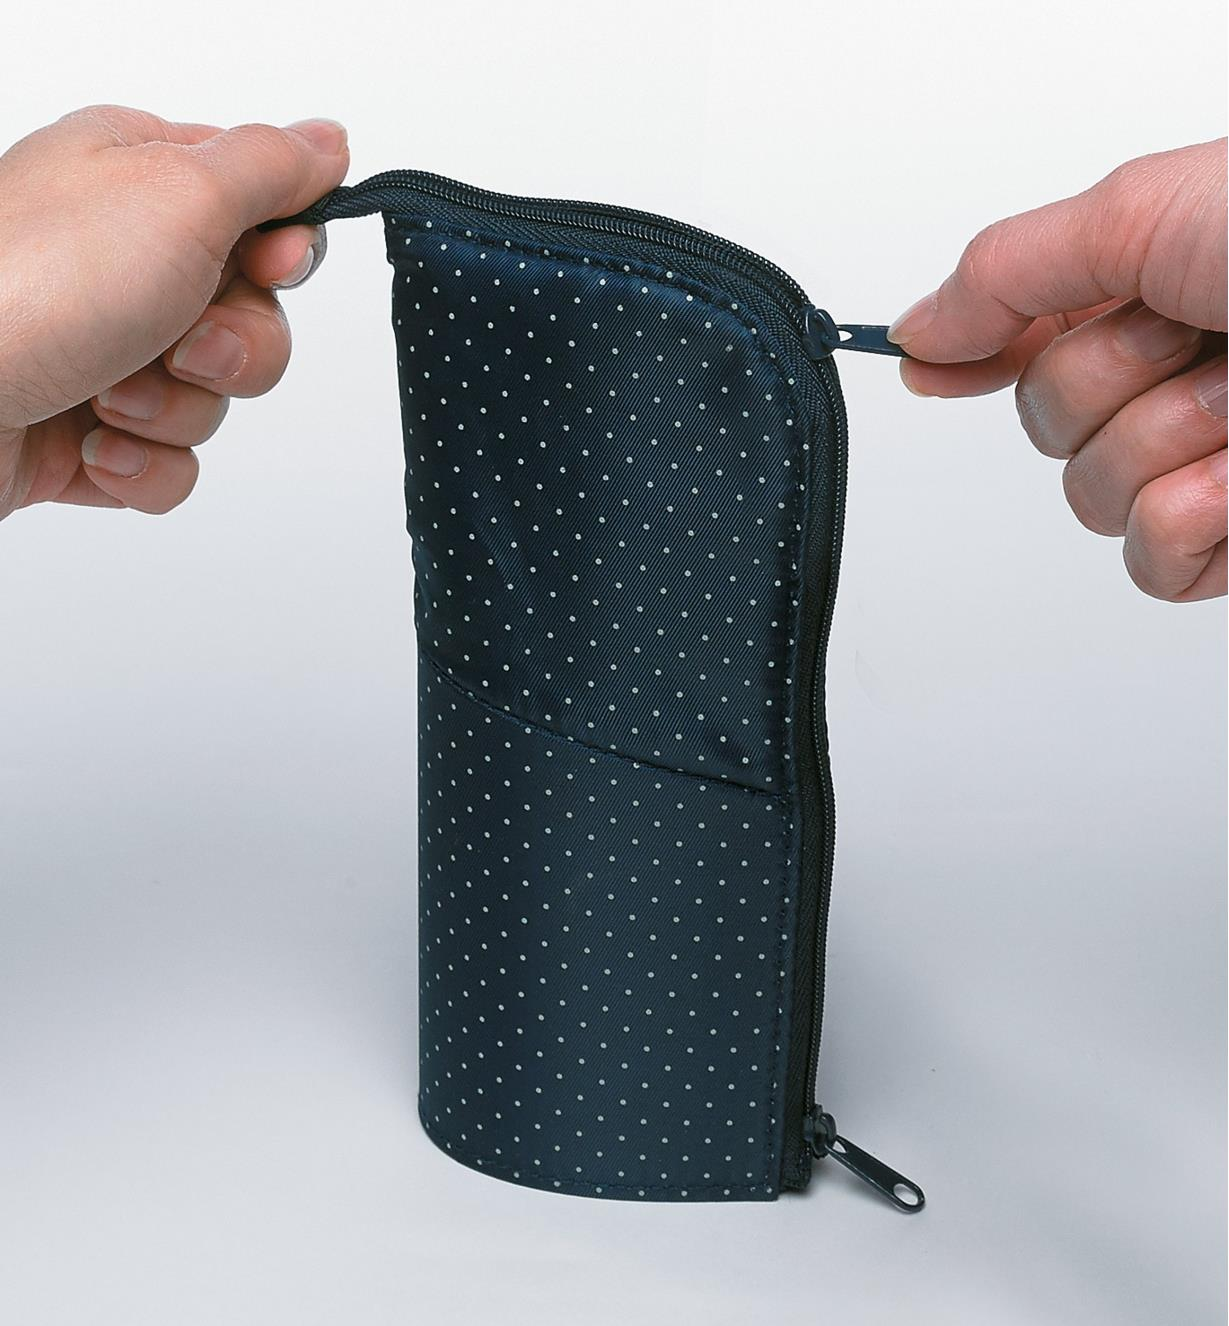 Stand-Up Pencil Case being zipped open